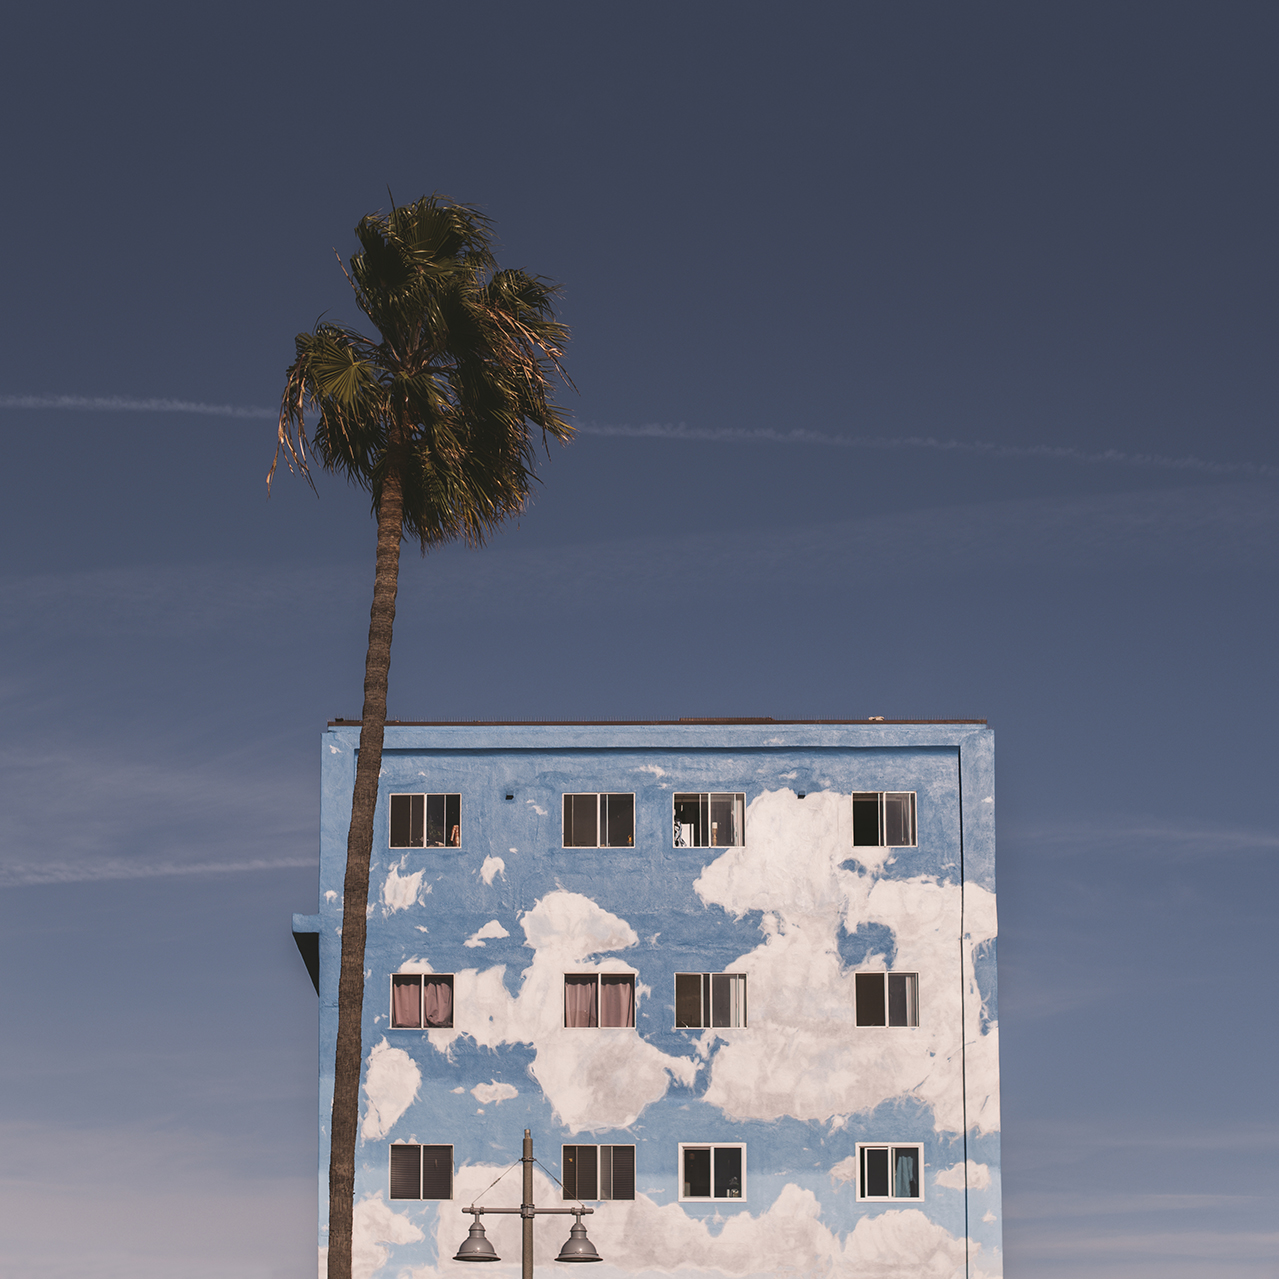 Los-Angeles-Travel-Photographer-Stacey-Lamb-Palm-Tree-Venice-Beach.jpg